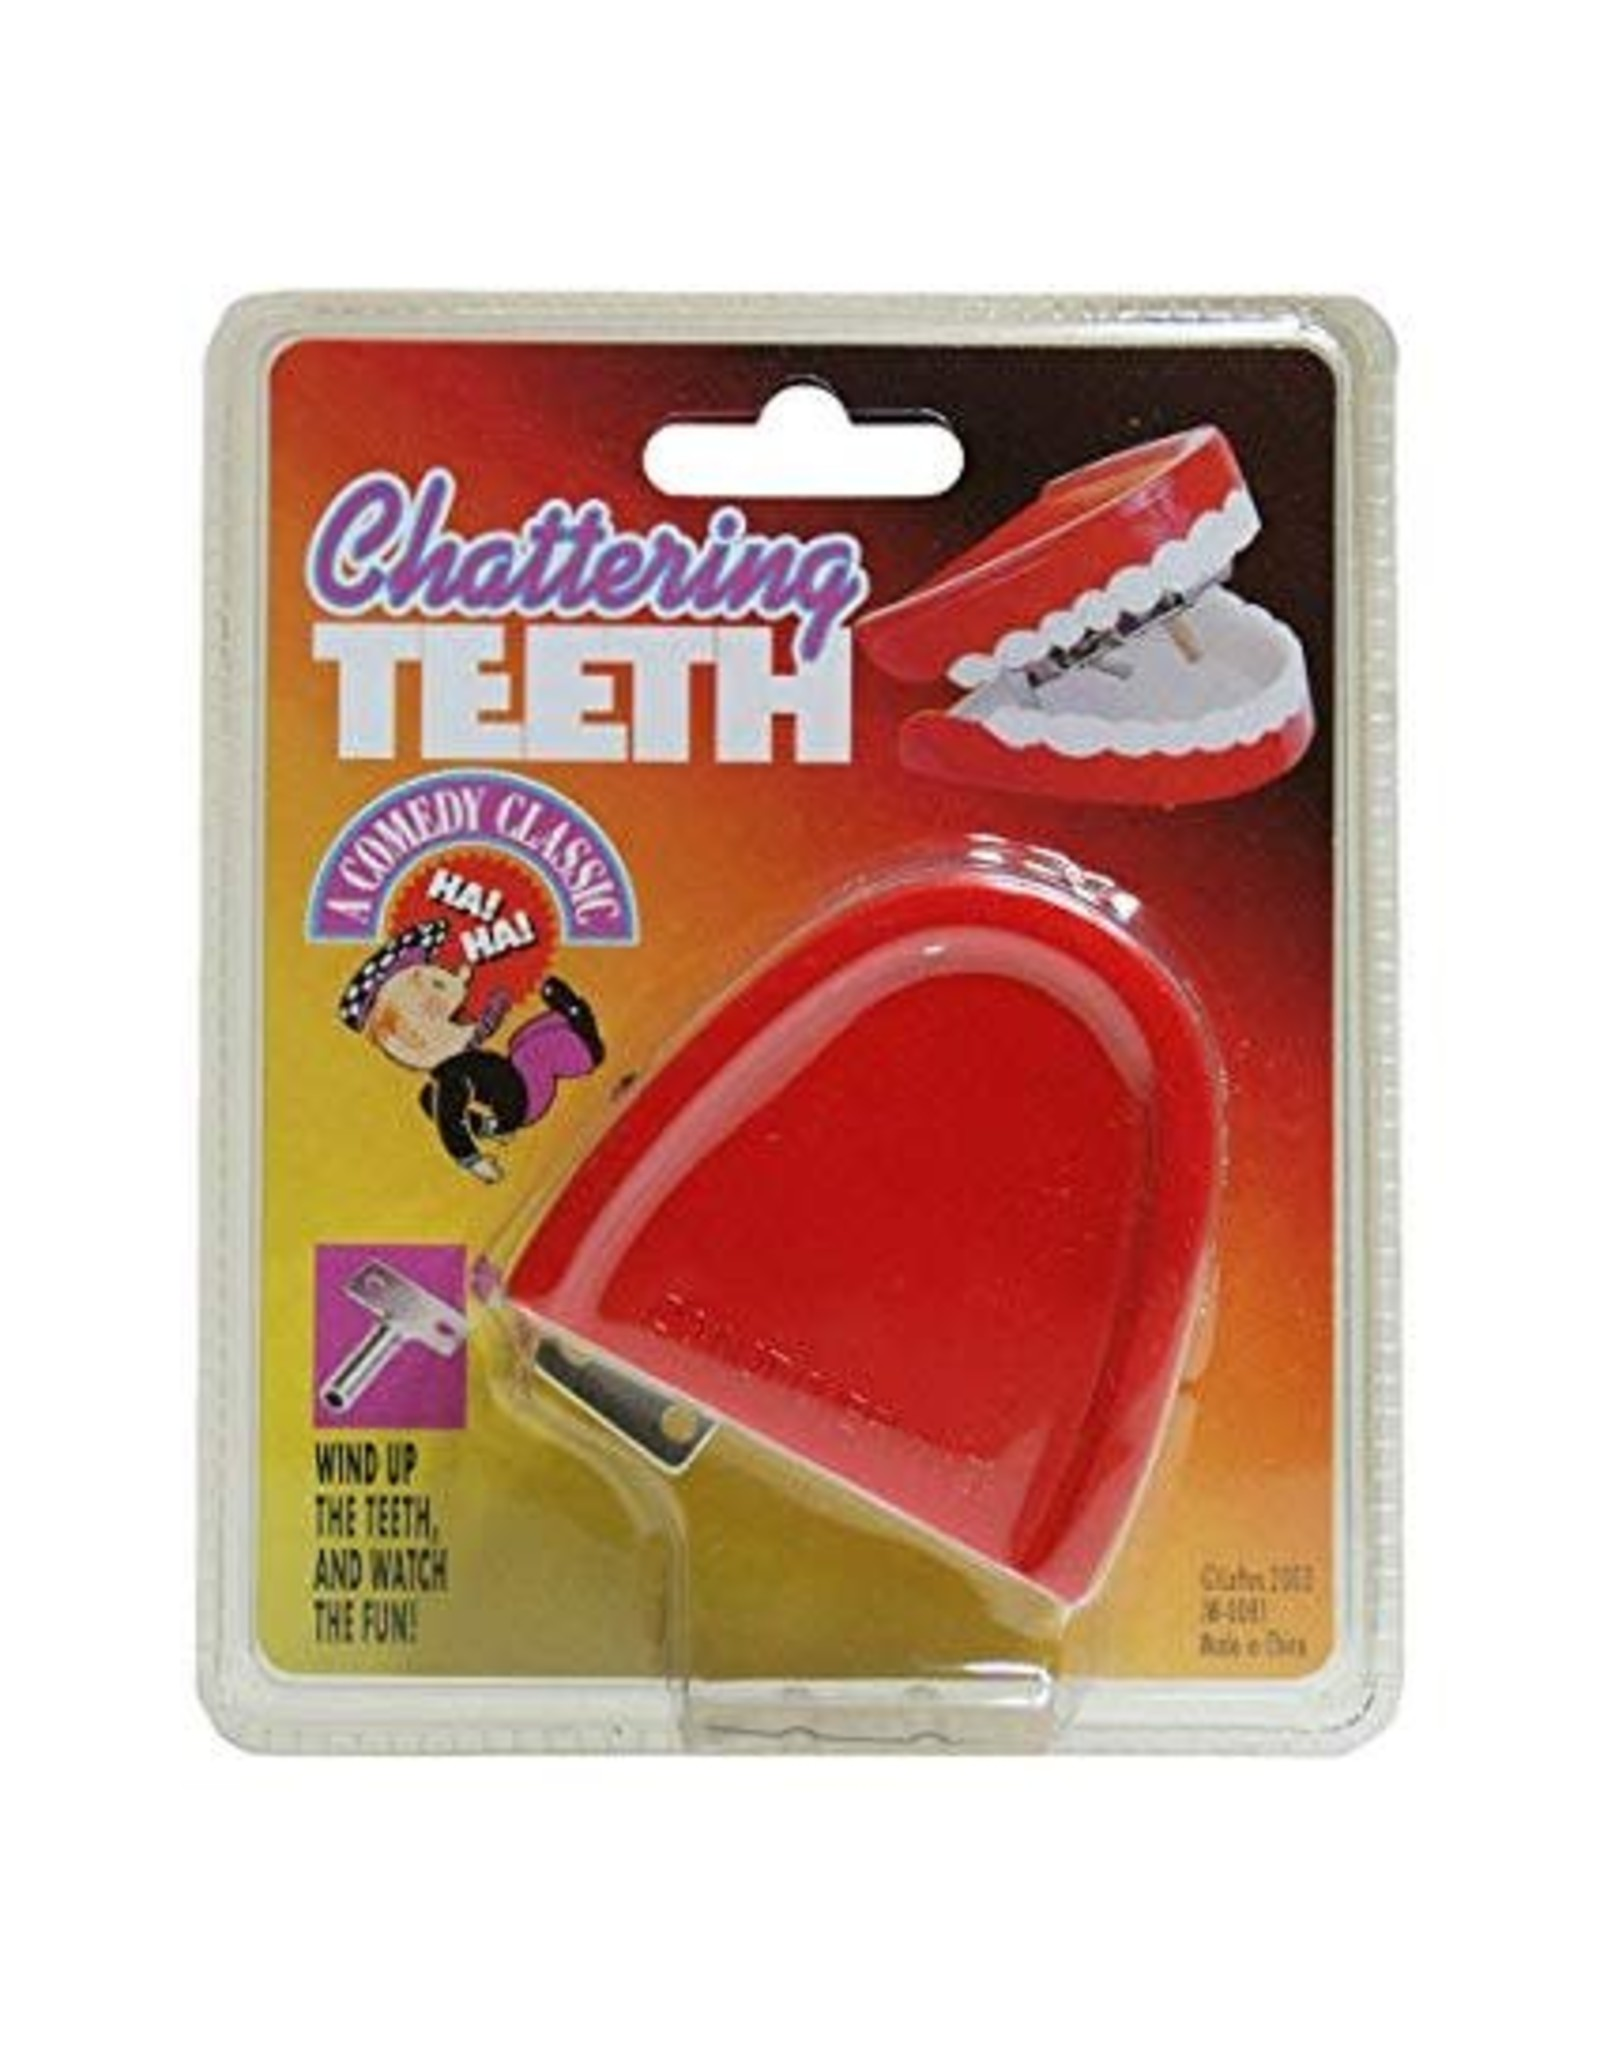 Loftus Chattering Teeth